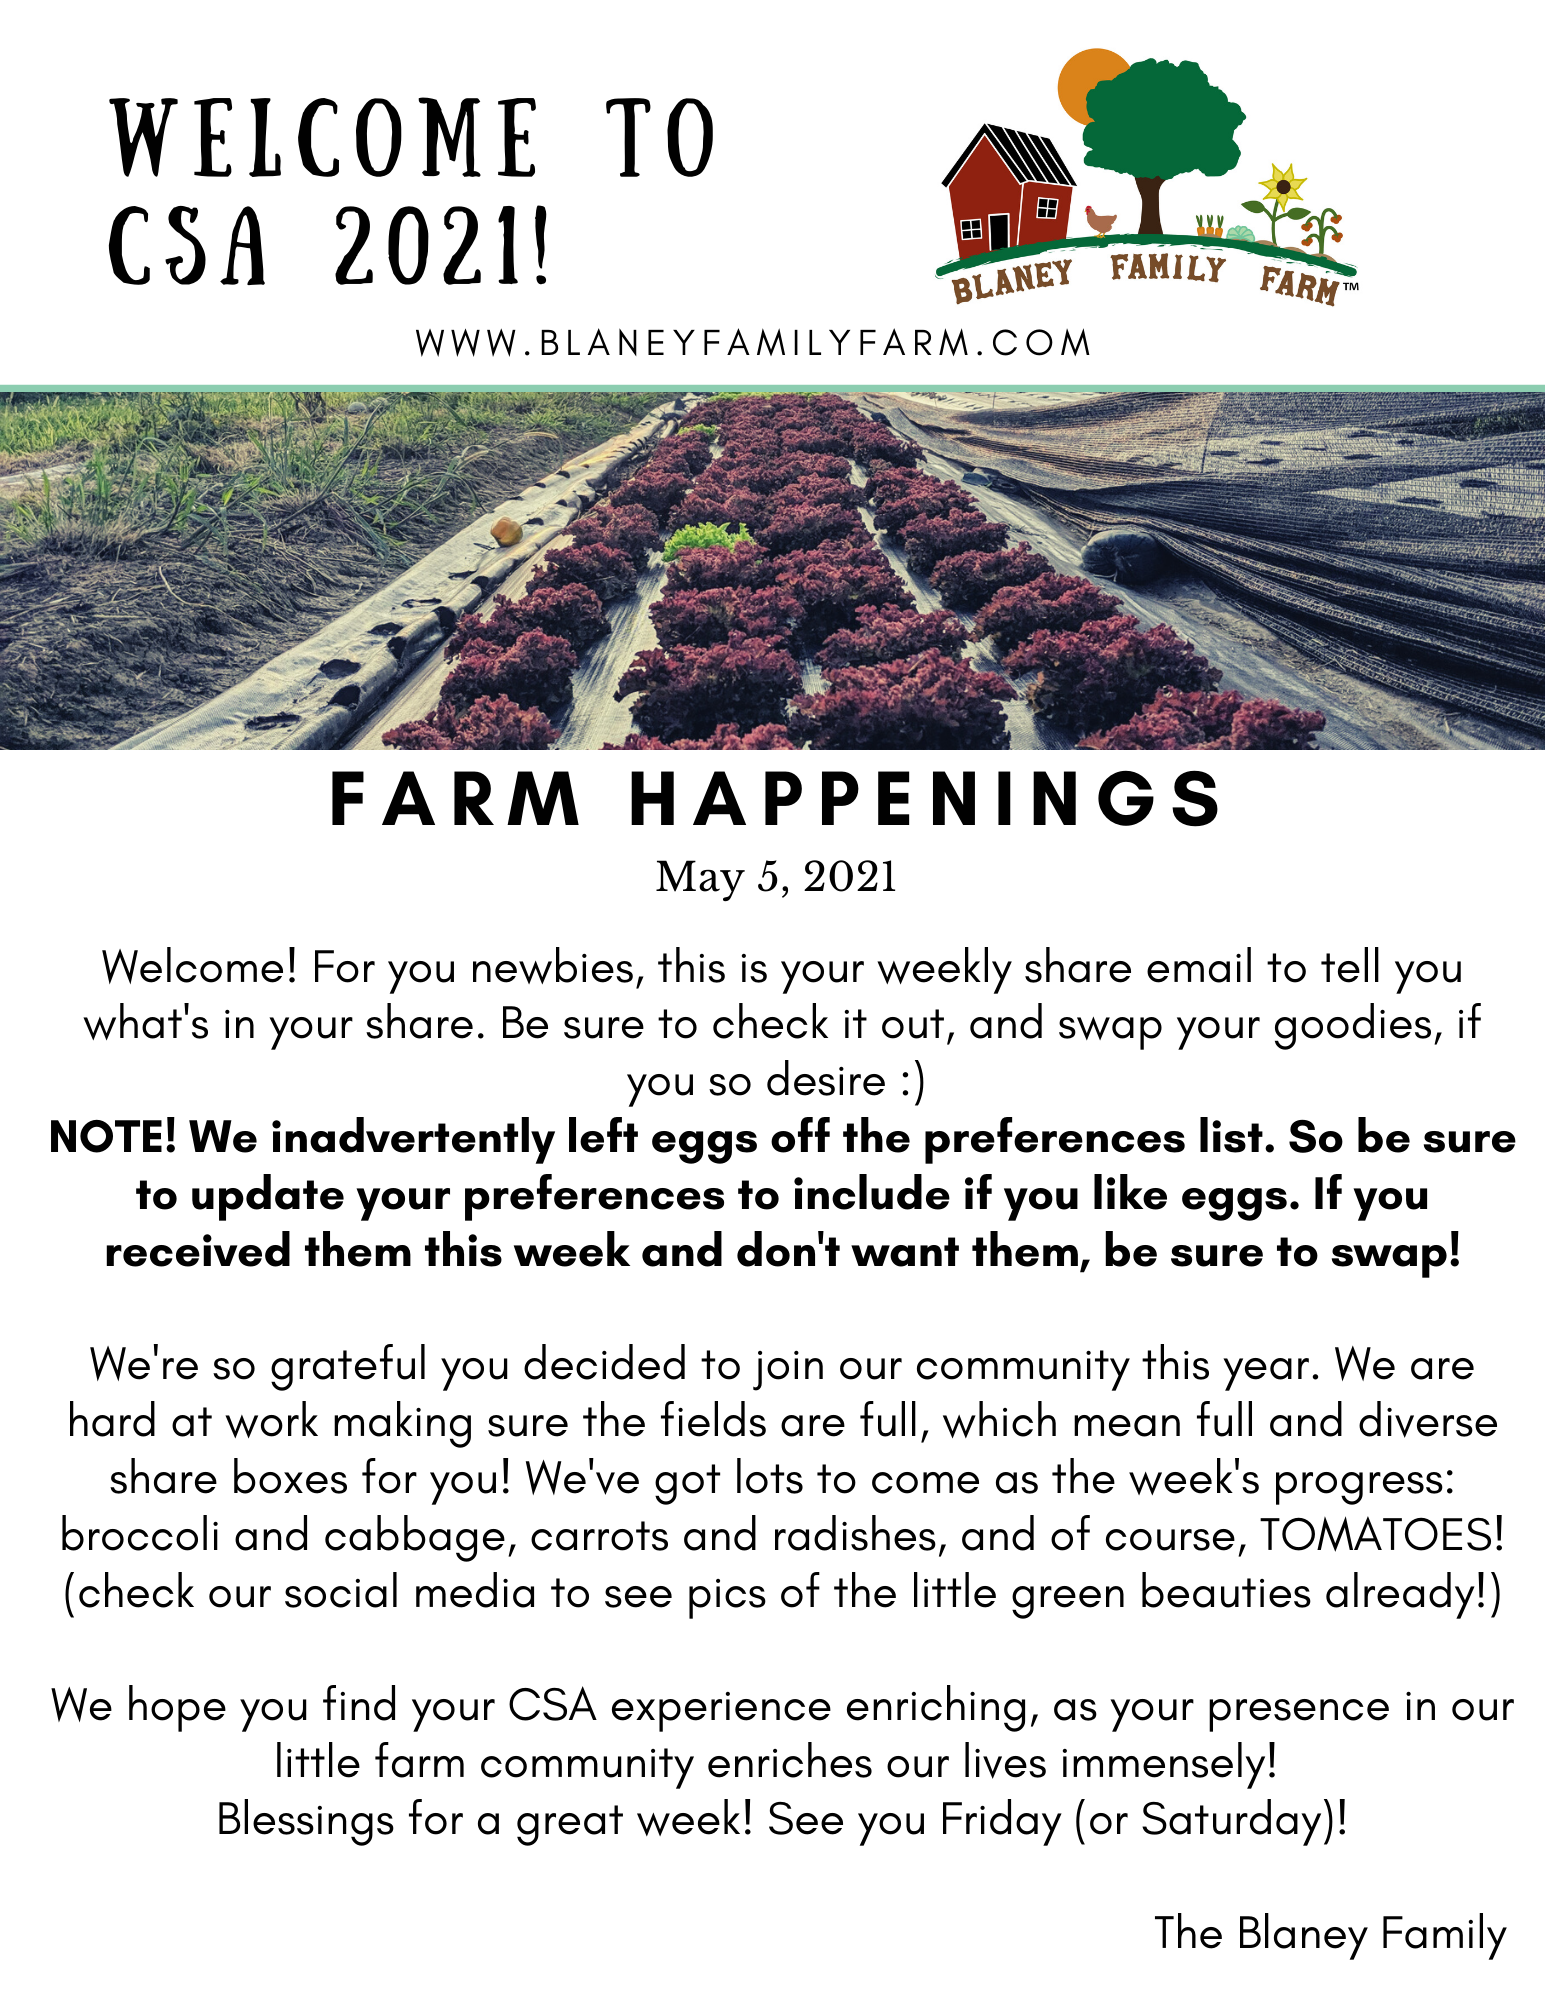 Welcome to CSA and Farm Happenings!